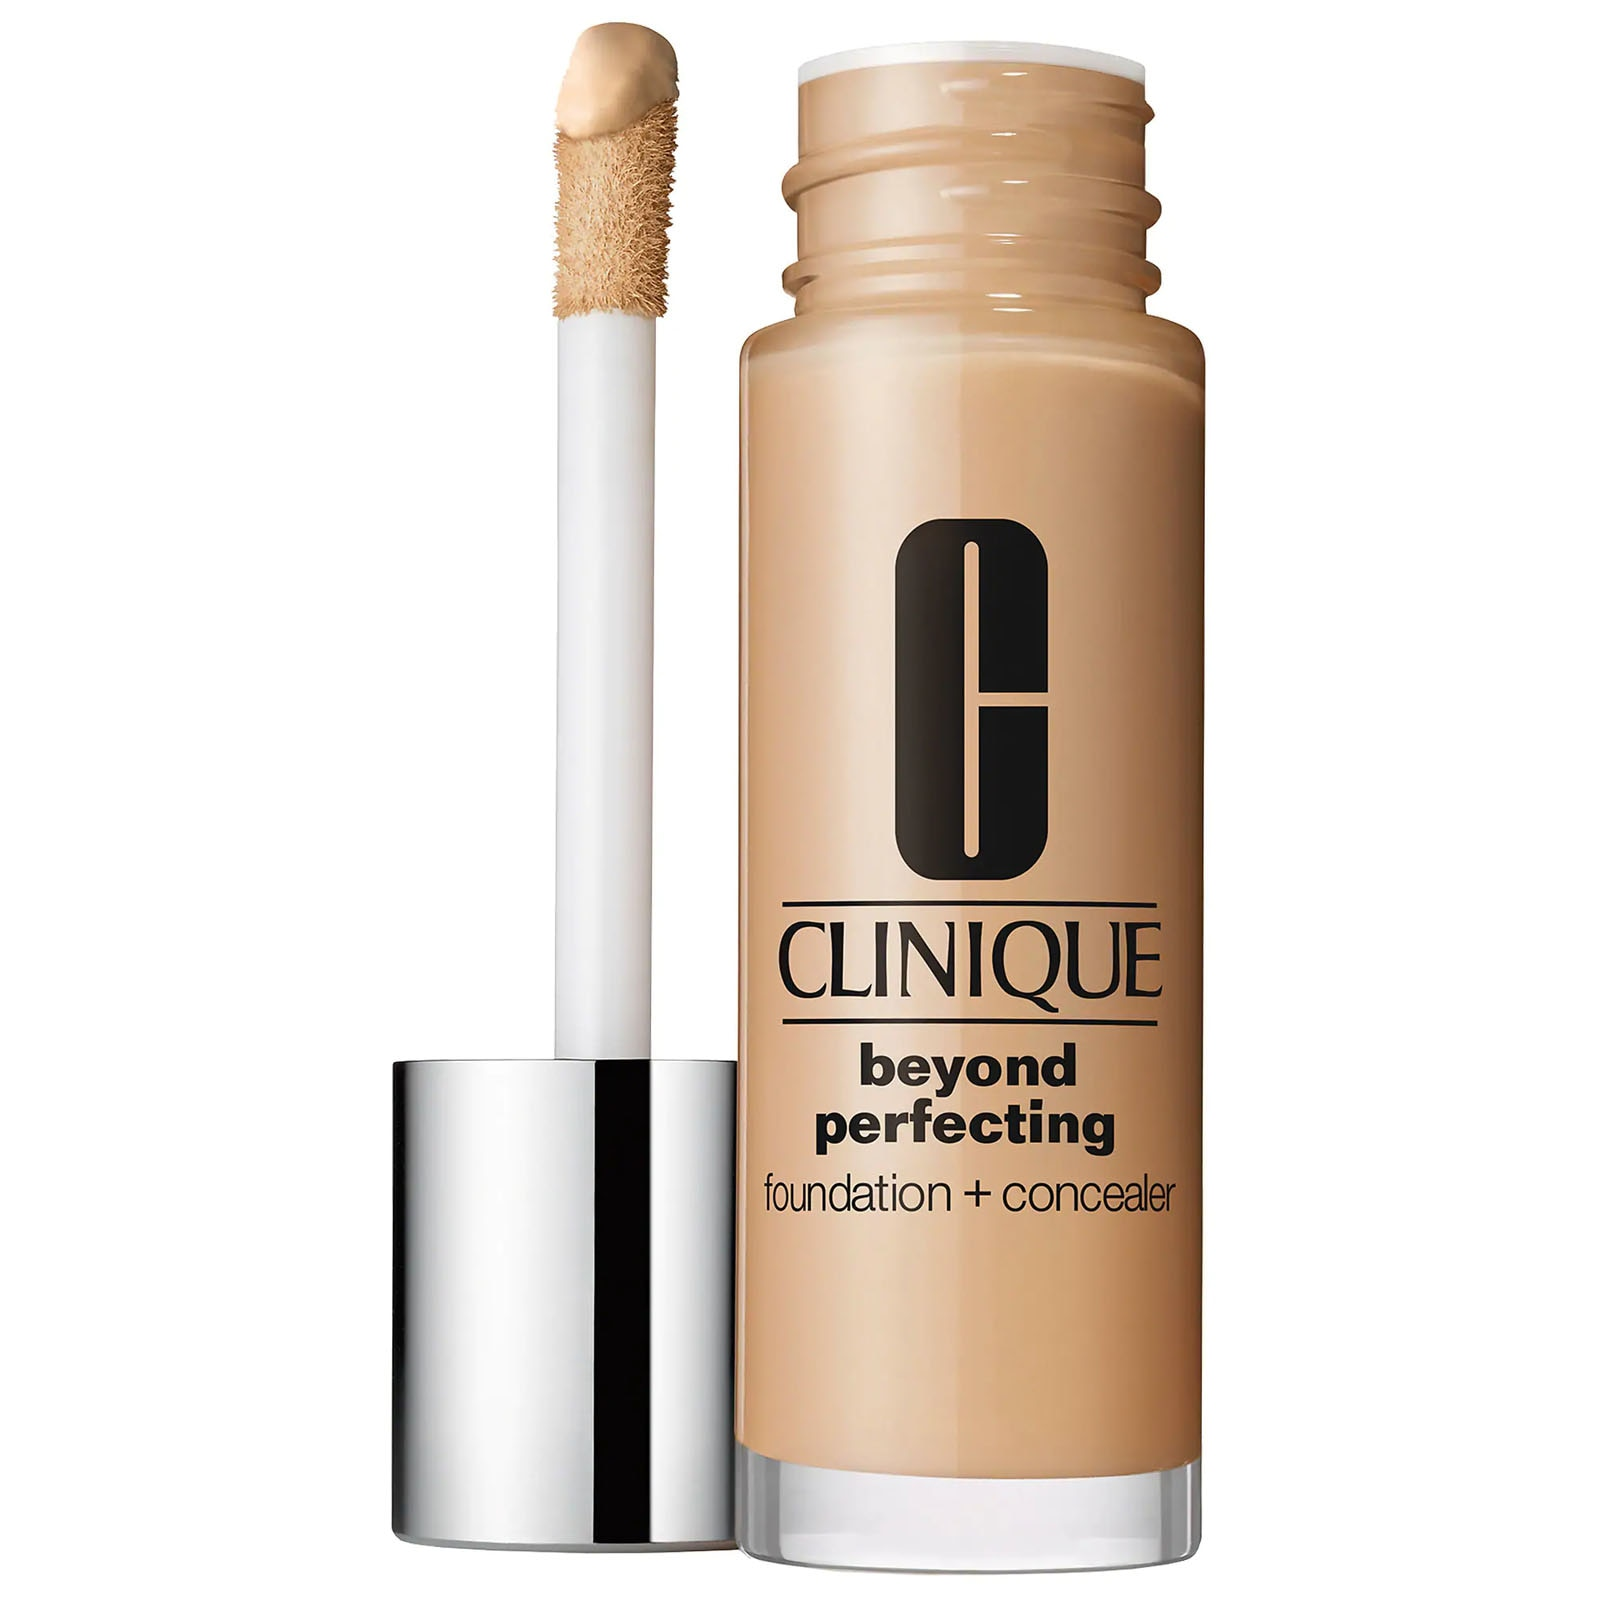 BEYOND PERFECTING FOUNDATION + CONCEALER (BASE + CORRECTOR)